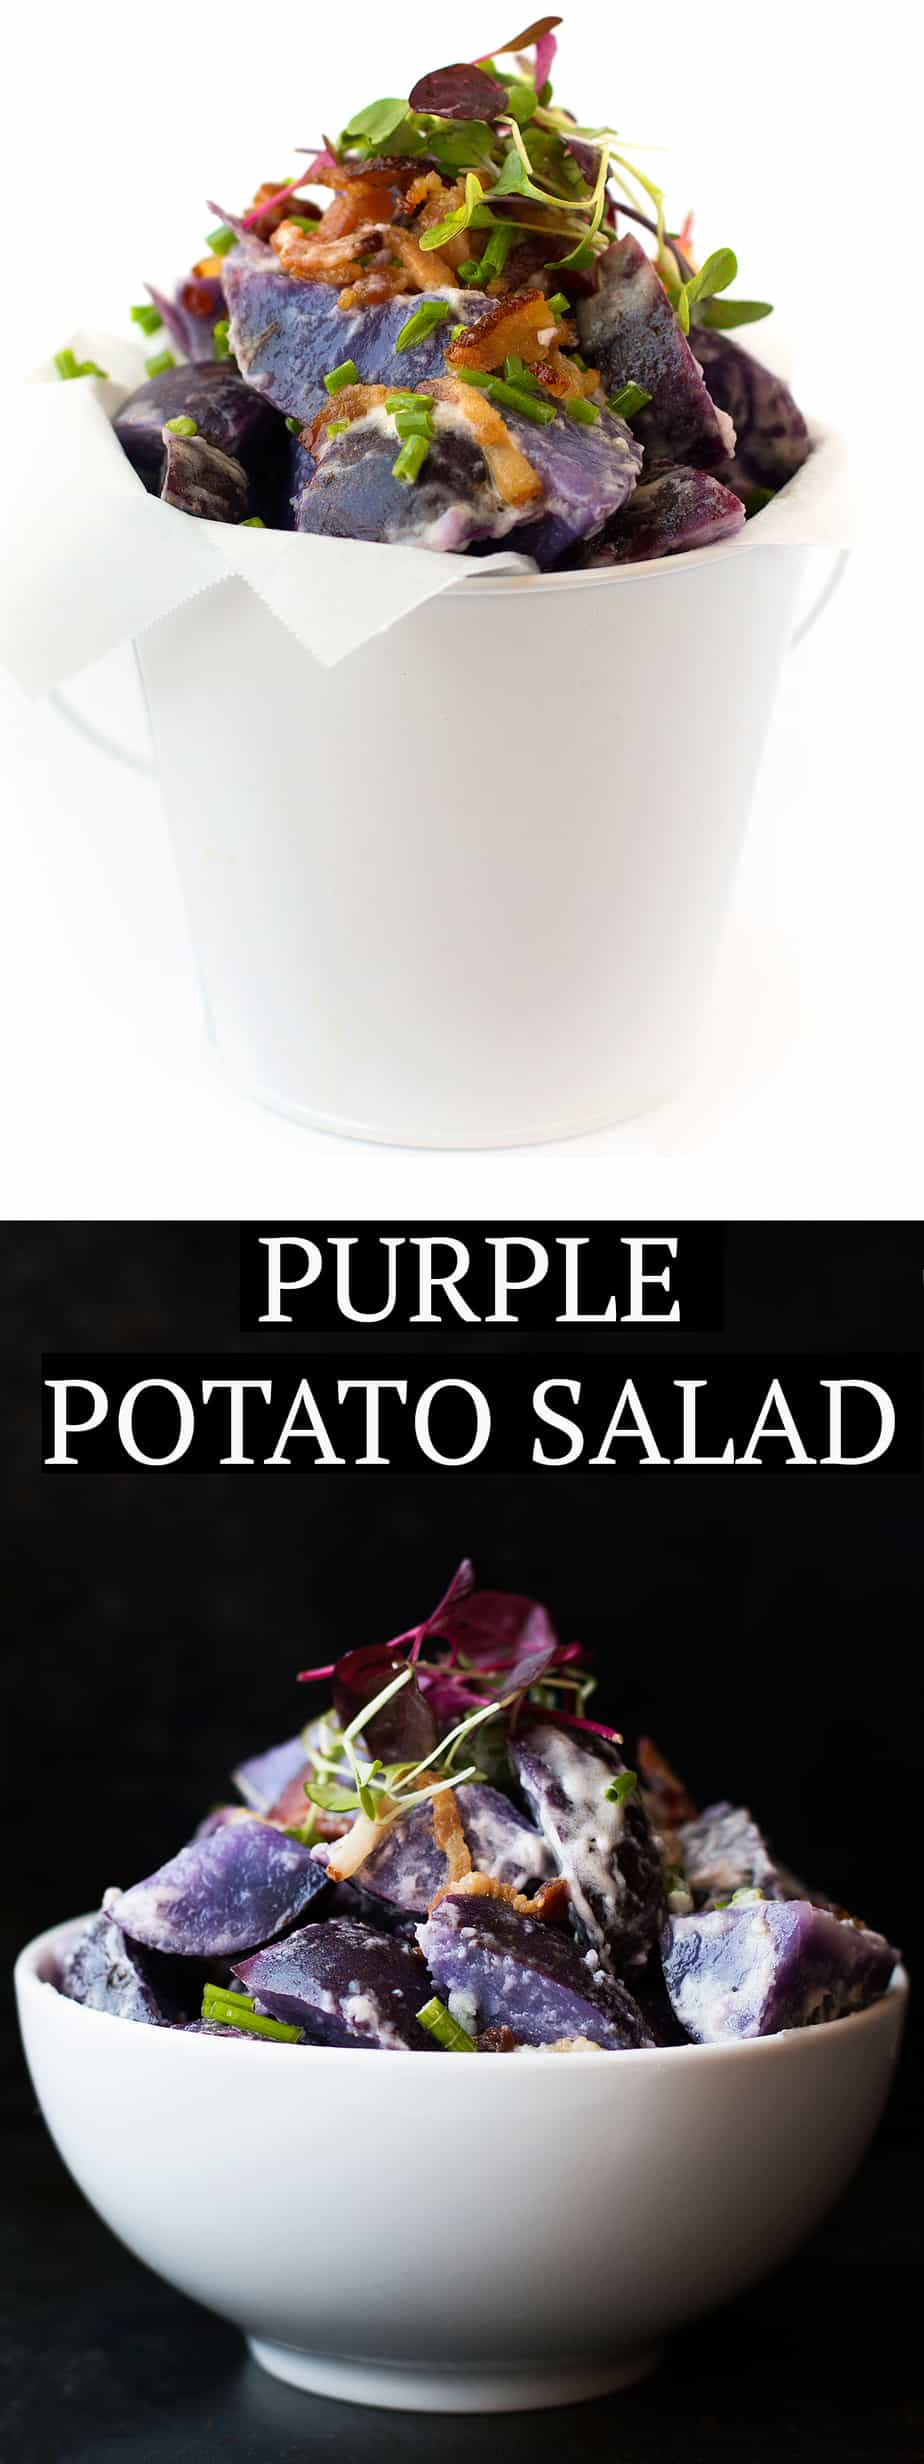 potato salad. The perfect party and picnic side dish. Serve hot or cold. Creamy texture with tangy flavor. The perfect balance of dill, apple cider vinegar, garlic oil